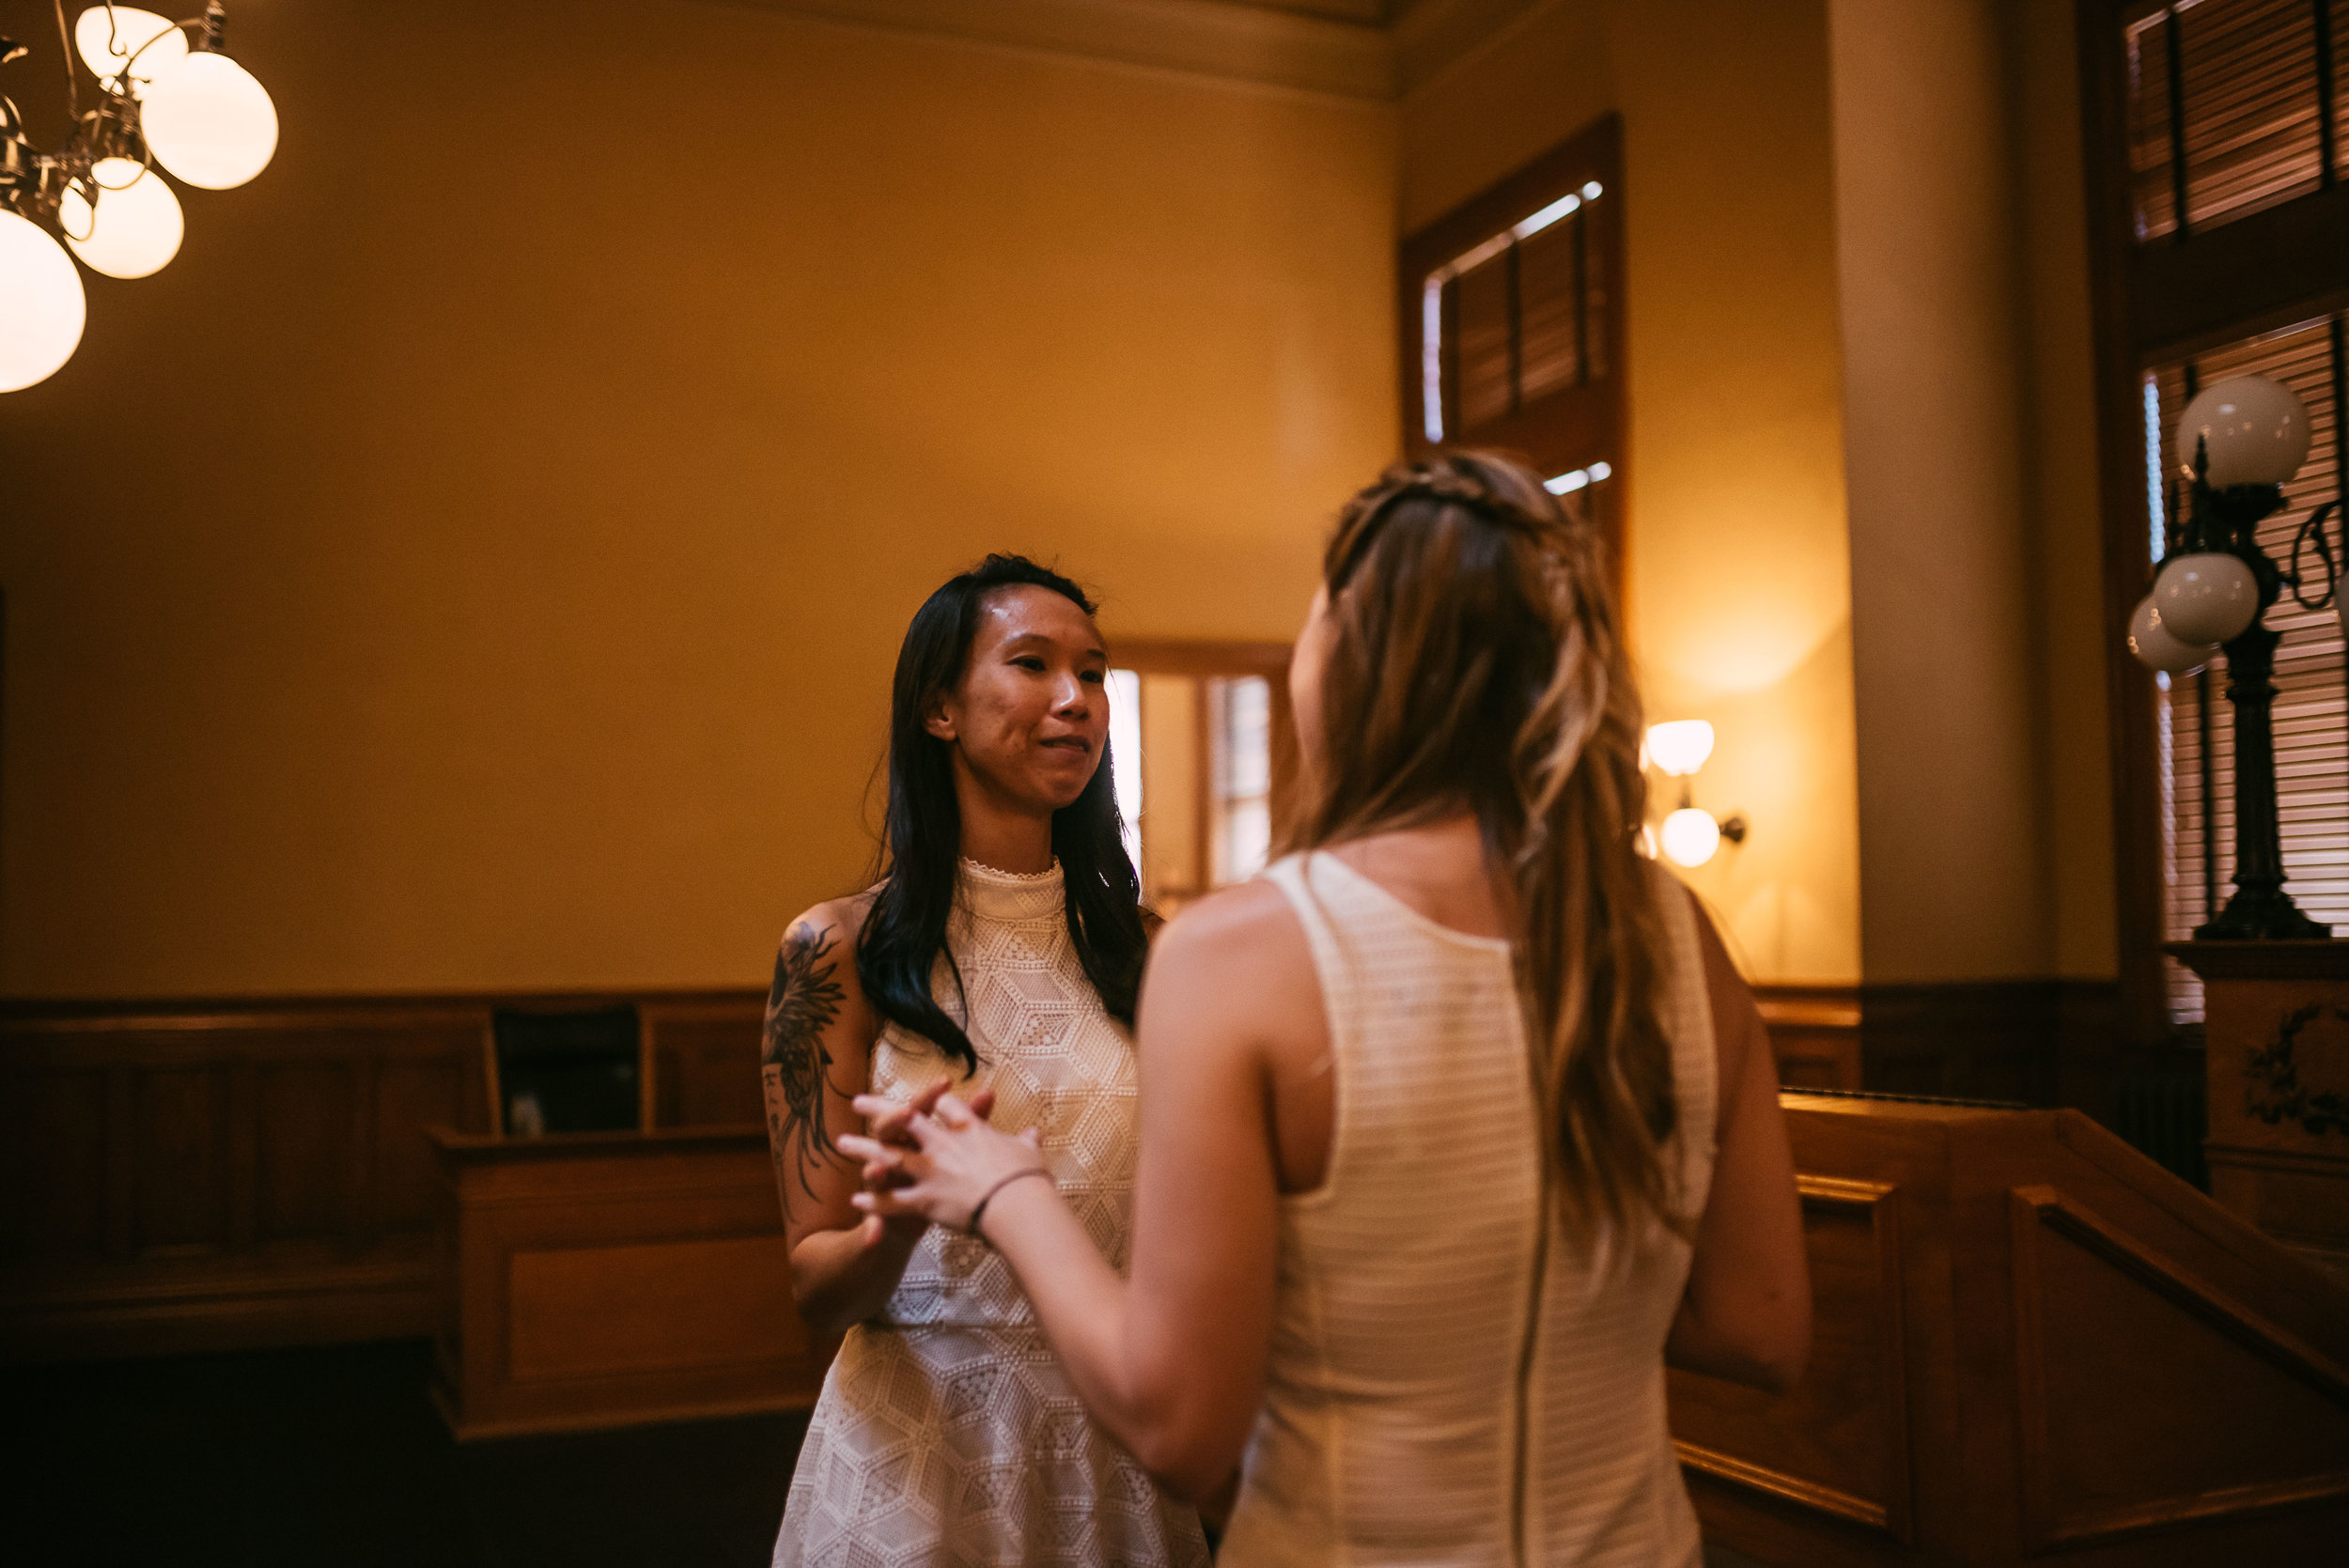 debbie-kelly-santa-ana-old-orange-county-courthouse-elopement-wedding-1-60.jpg